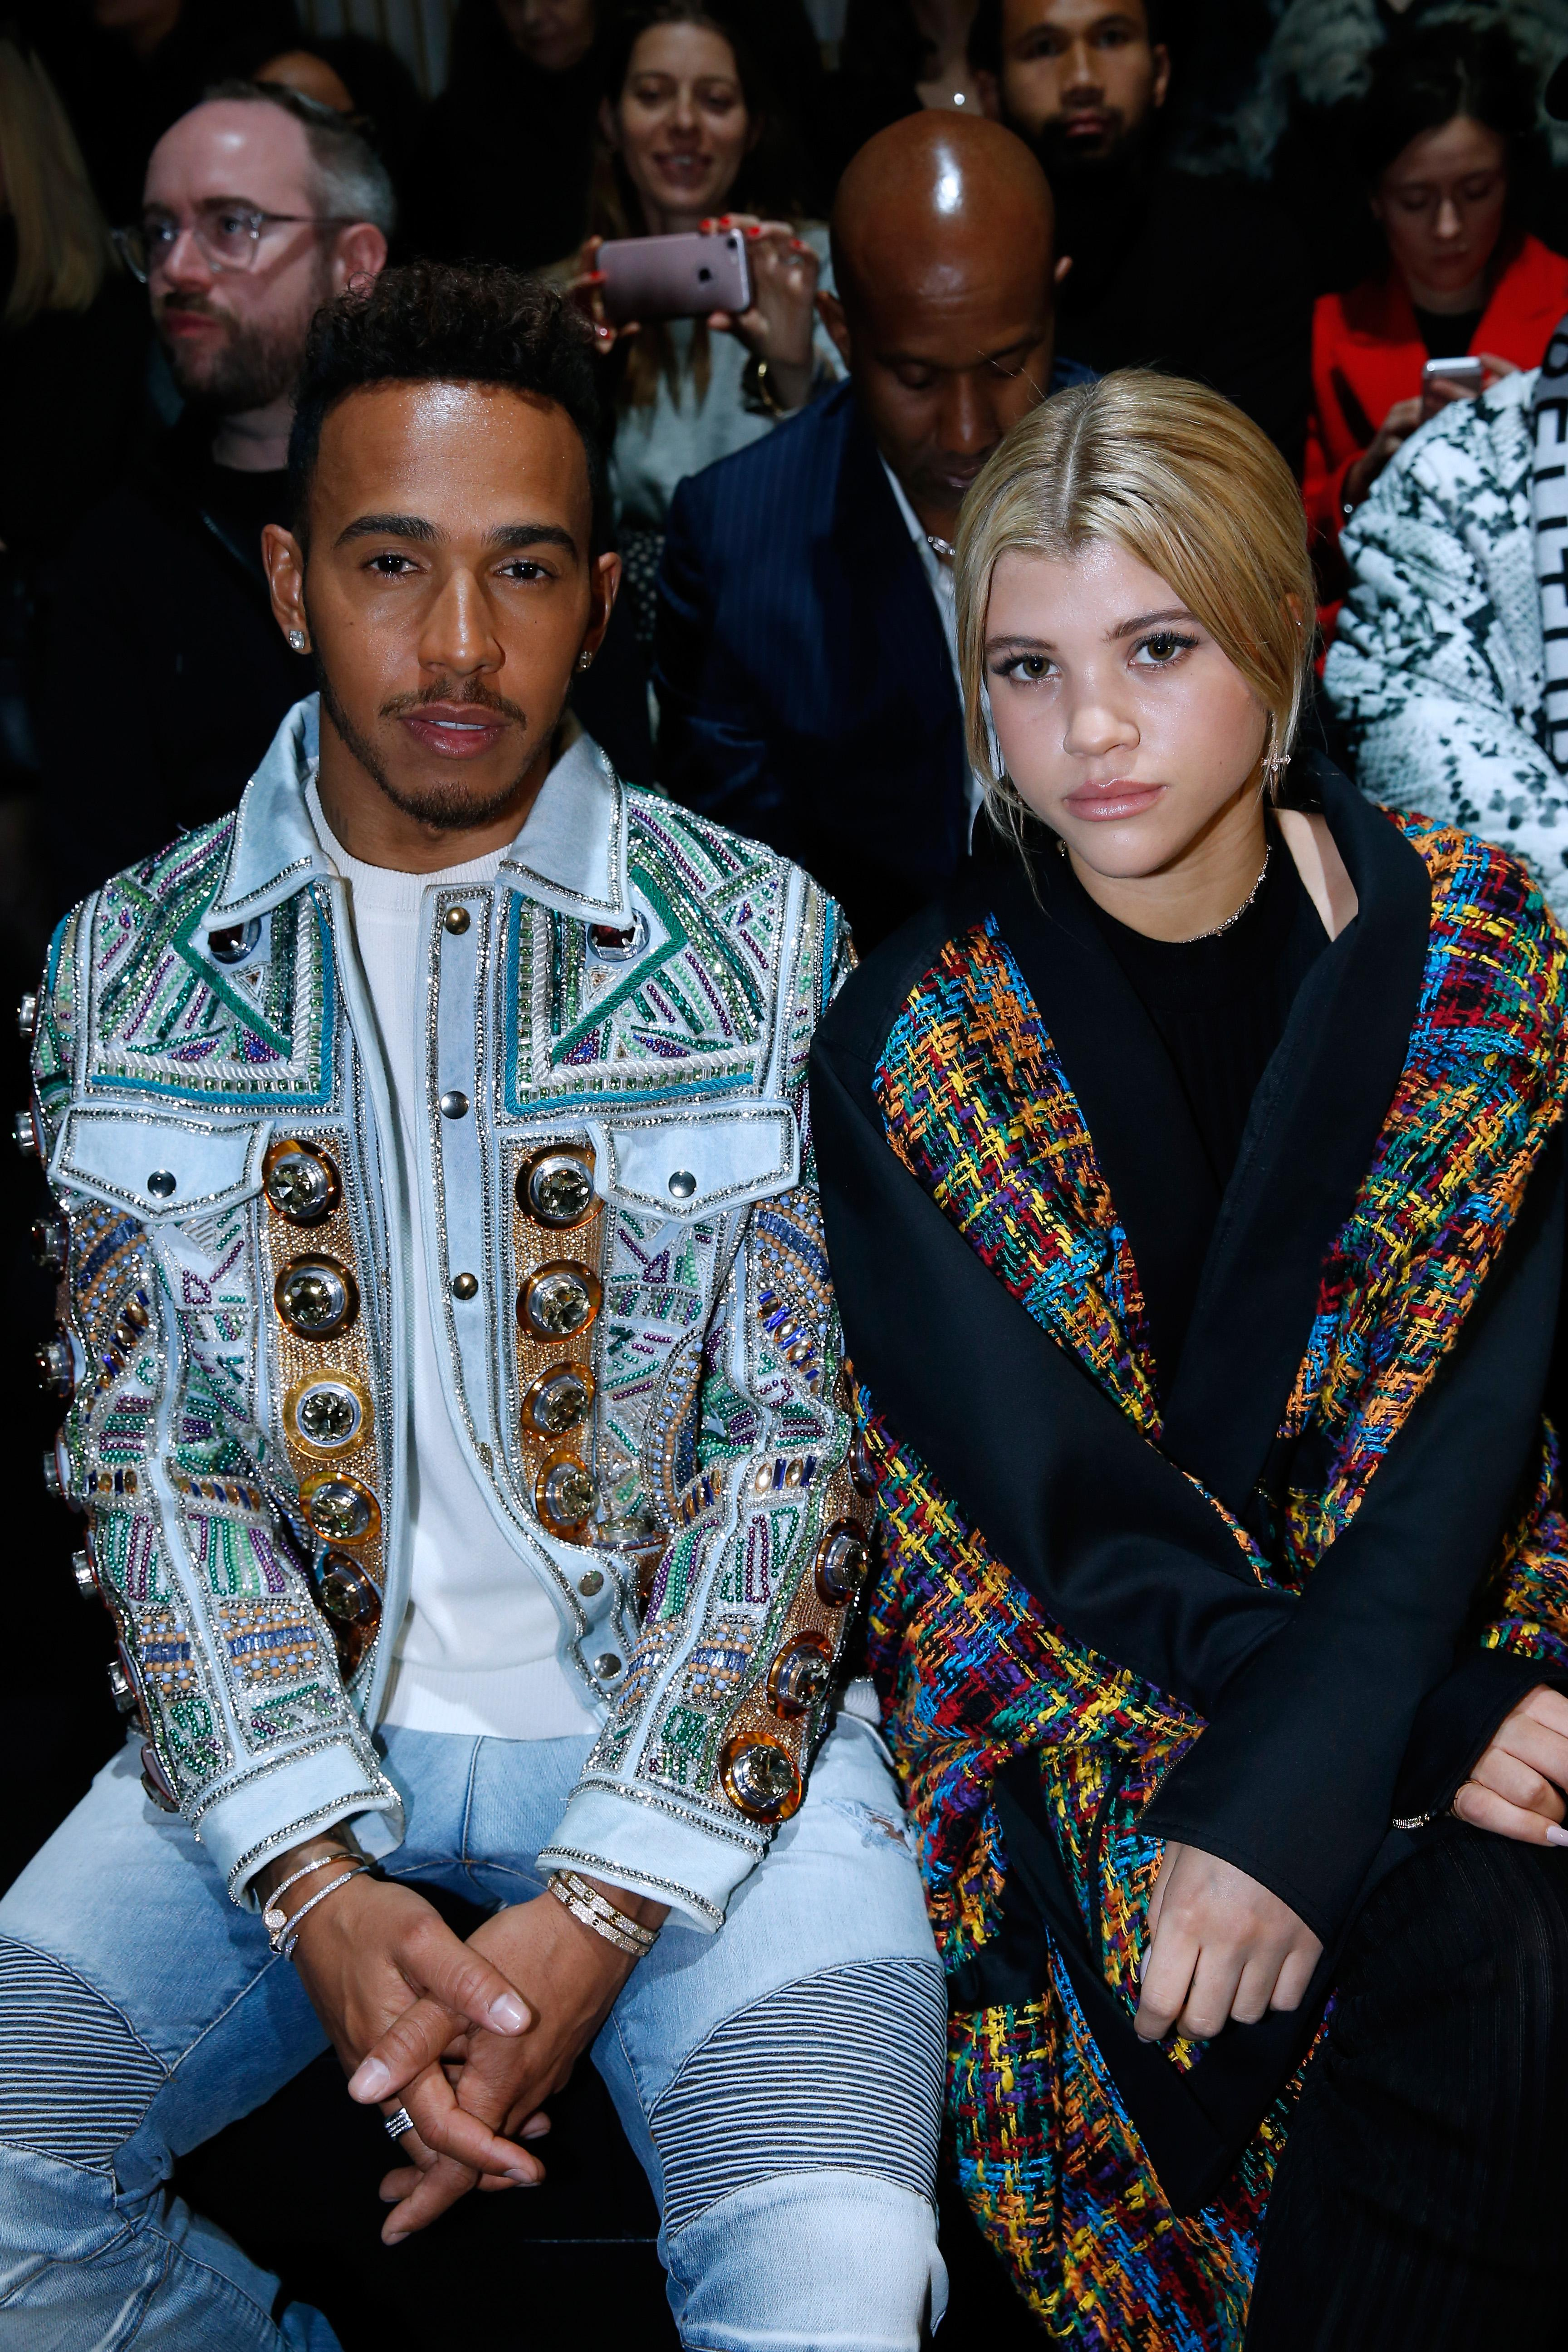 Lewis has been spotted on the FROW with Sofia Richie